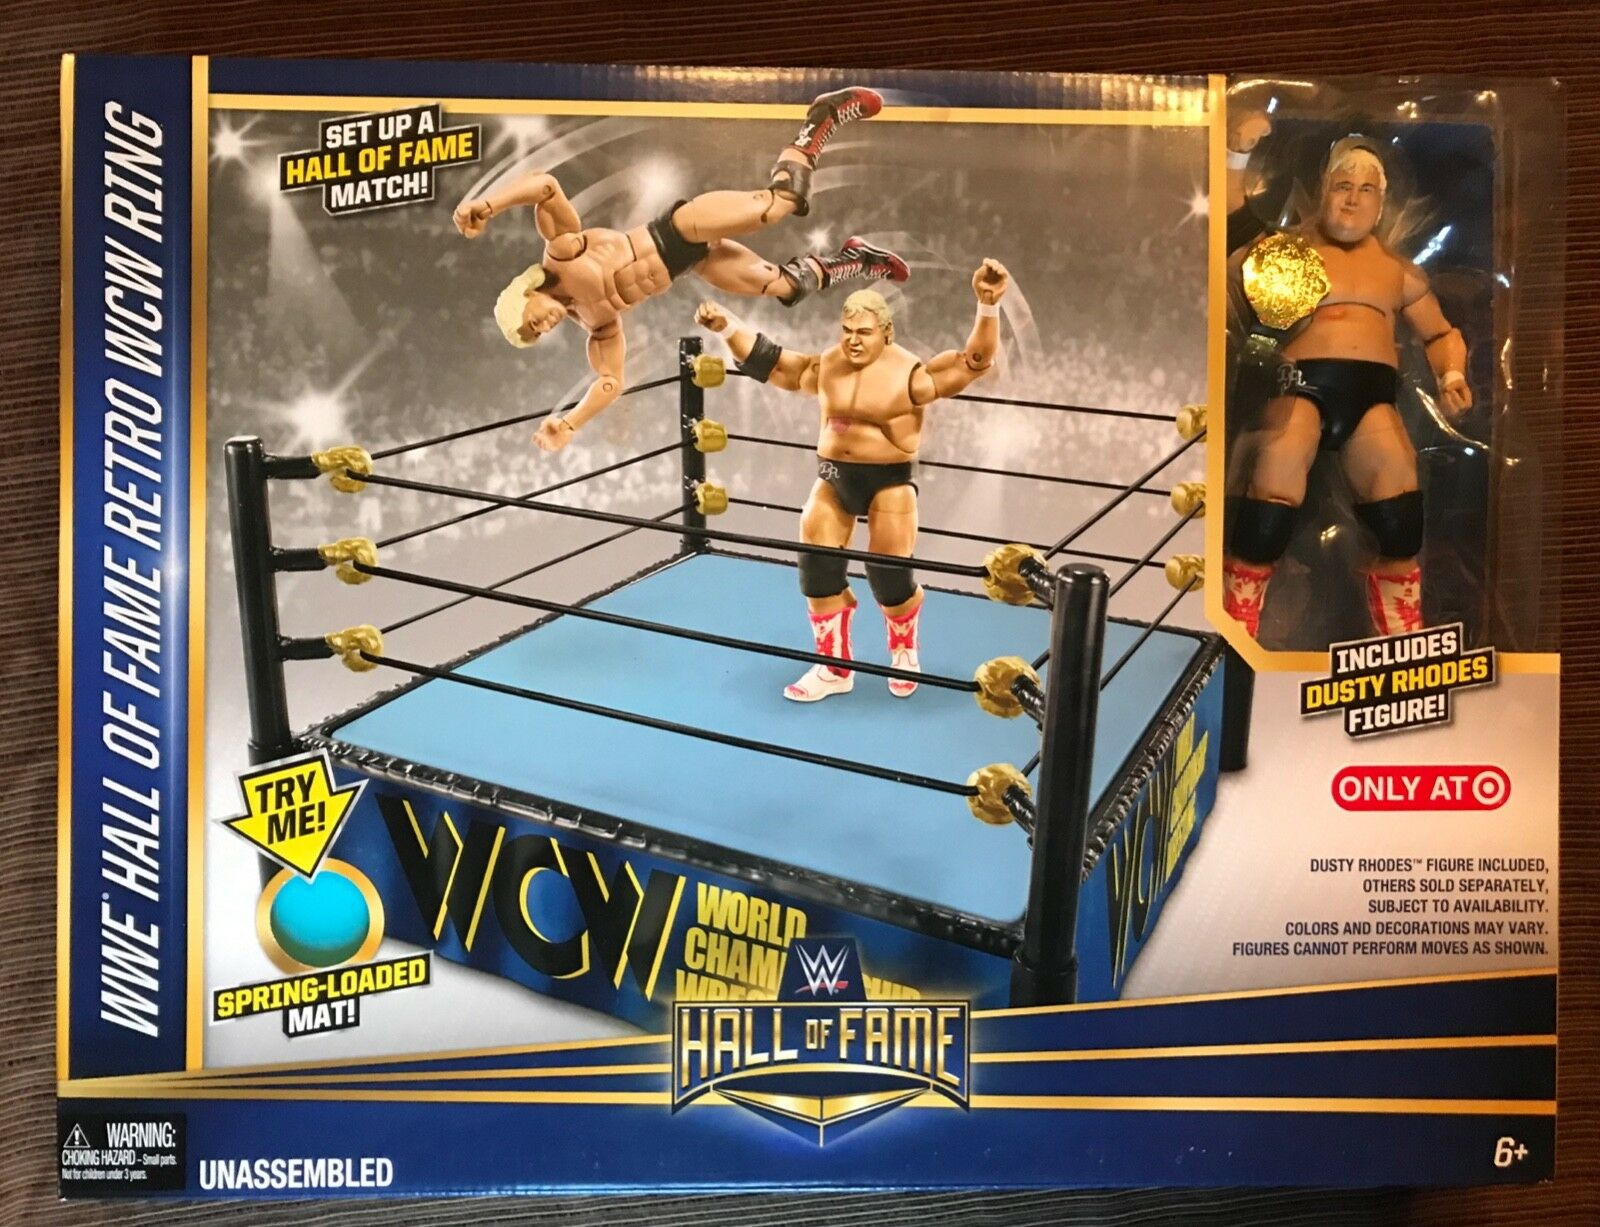 Dusty Rhodes WWE WWF Hall of Fame Wrestling Retro WCW Ring NIB Target Exclusive